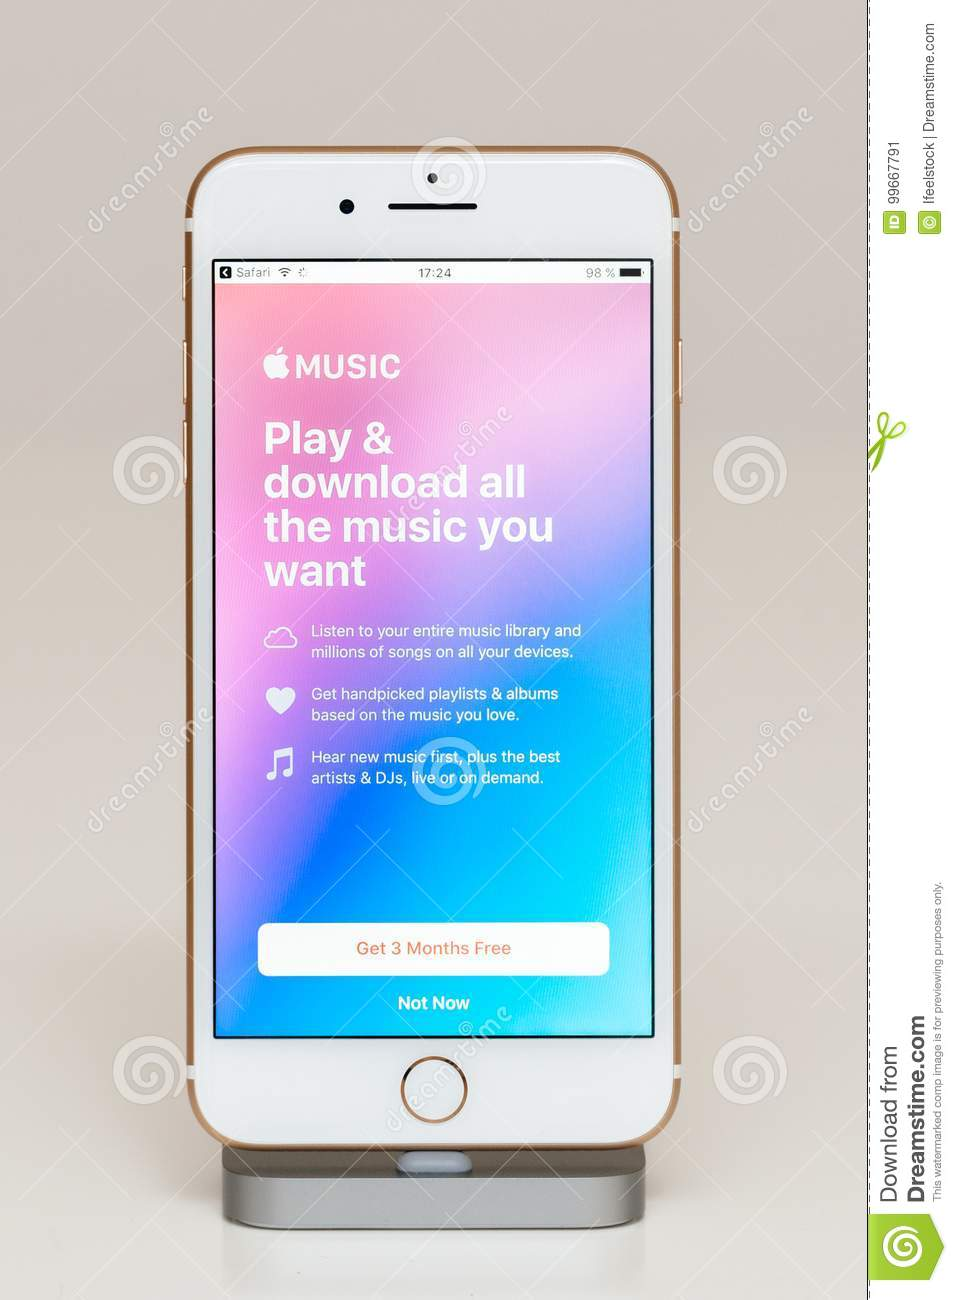 download free songs on apple iphone